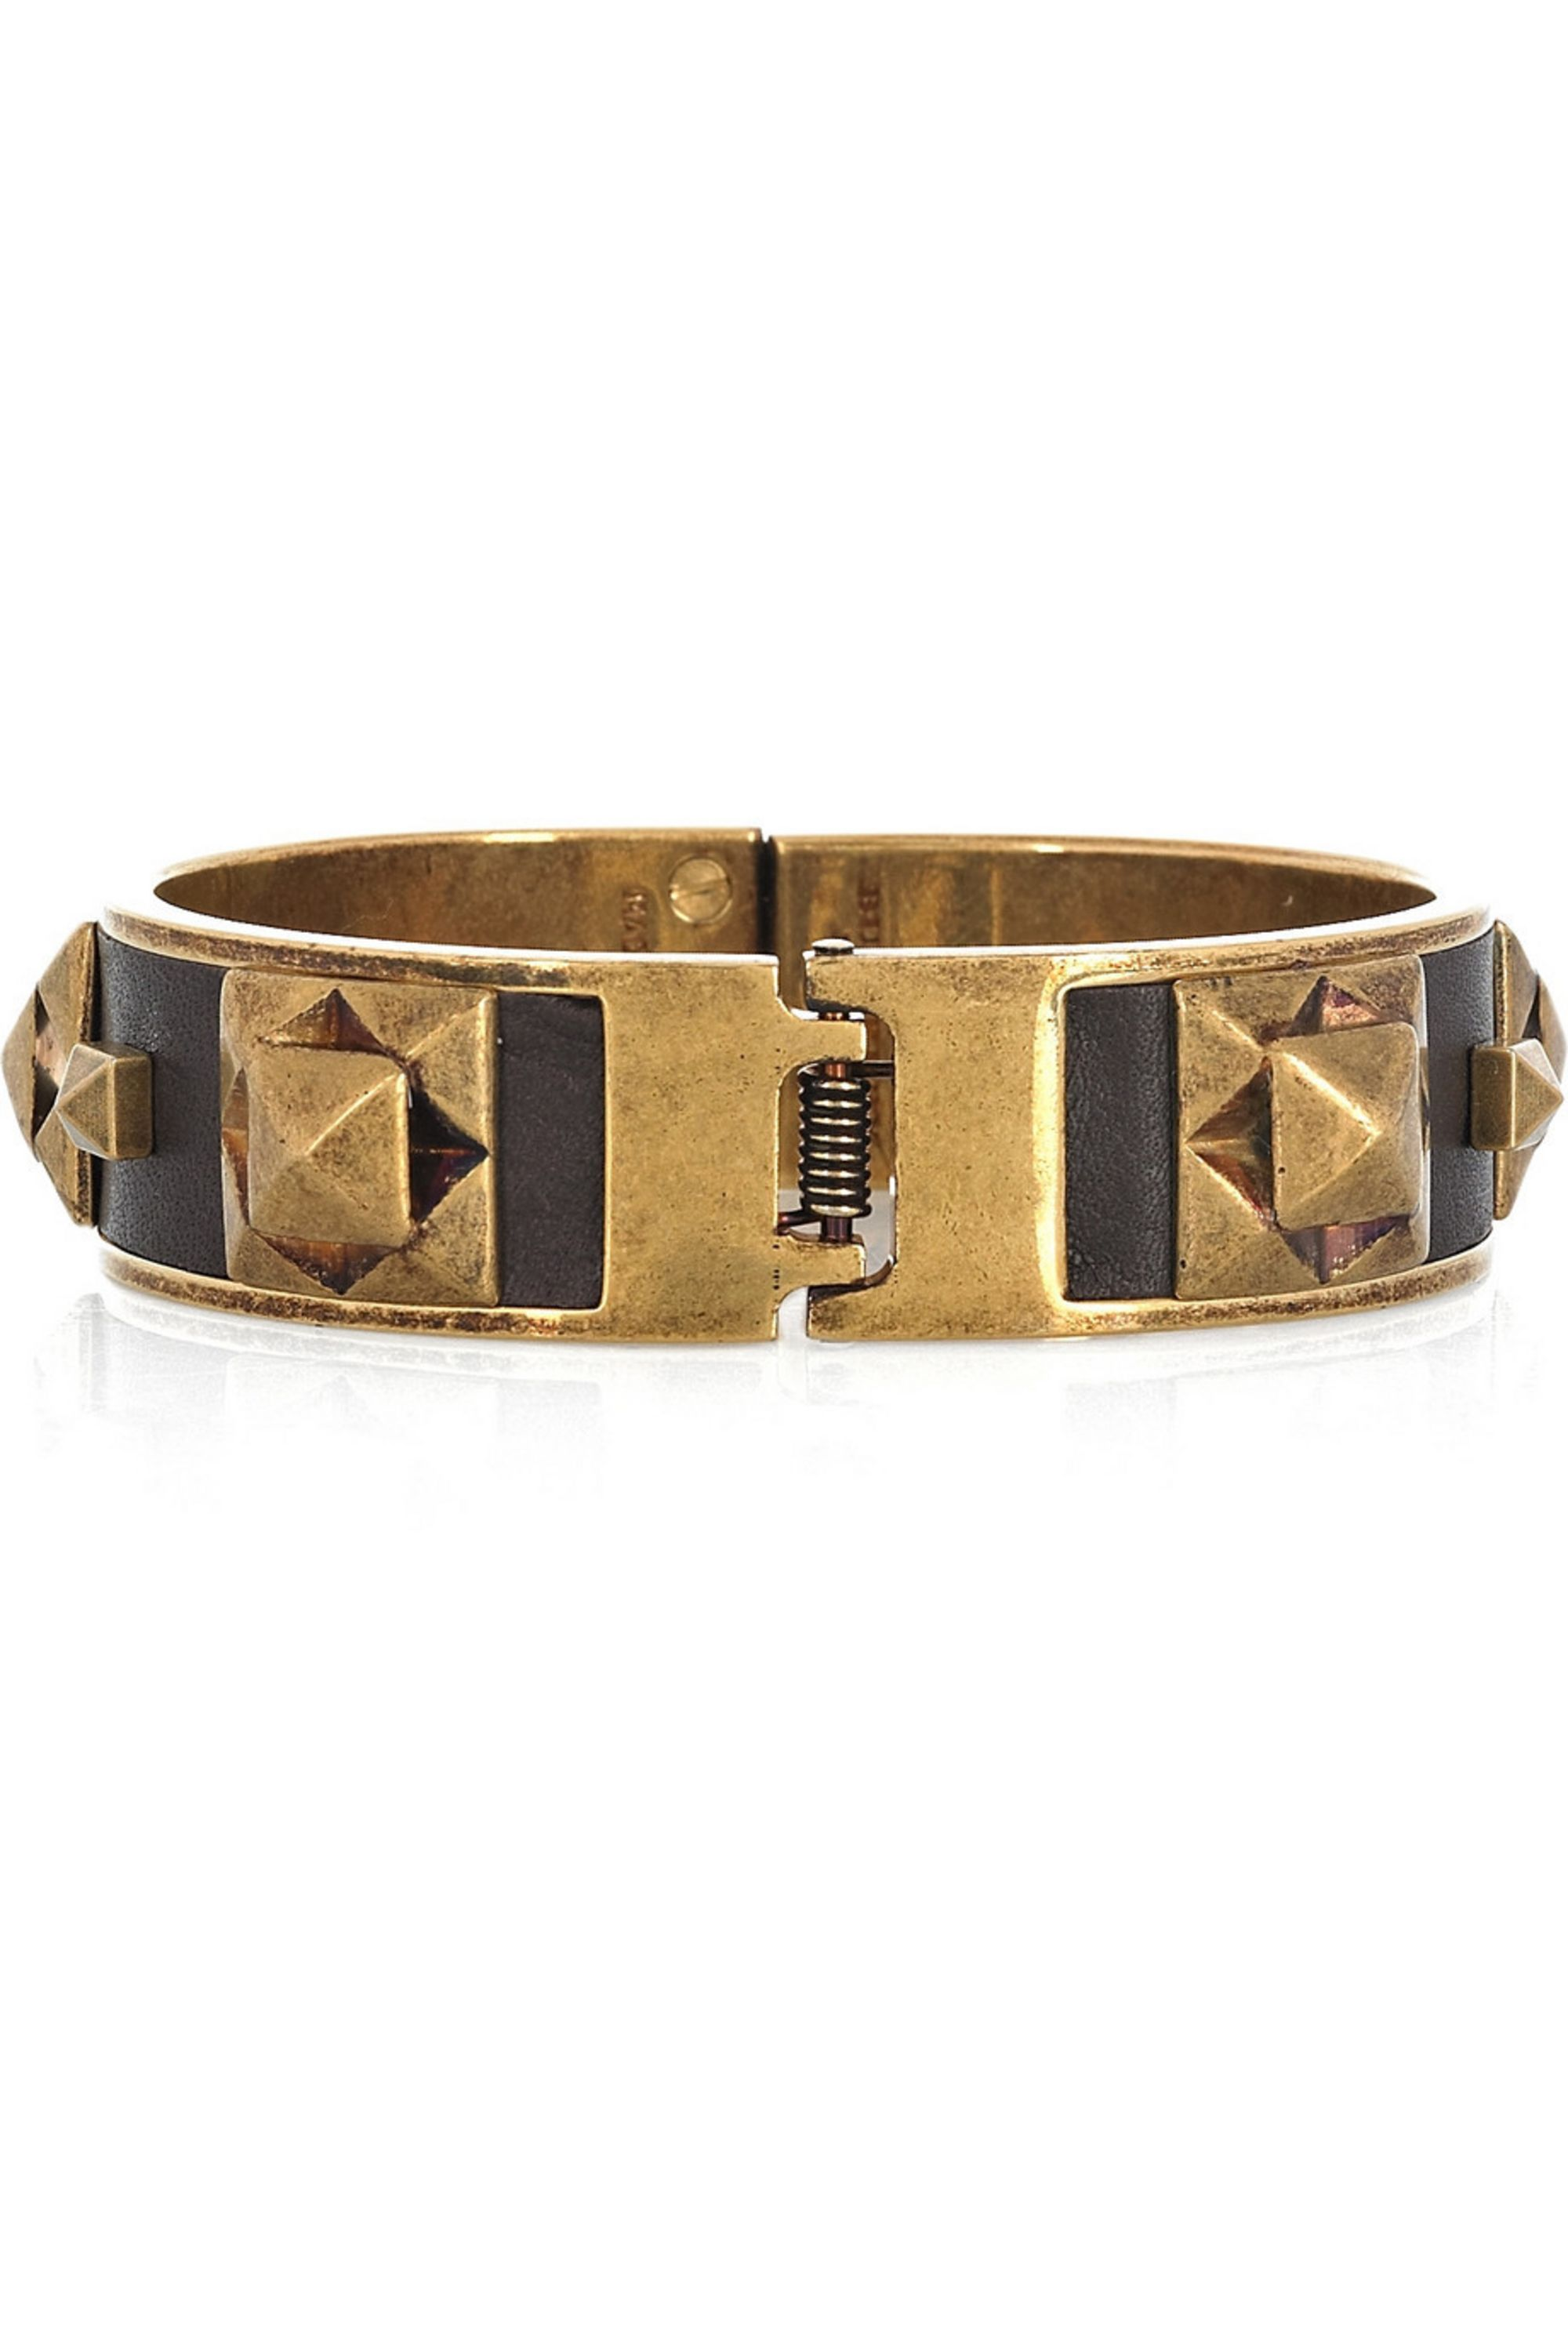 Burberry Leather and brass cuff